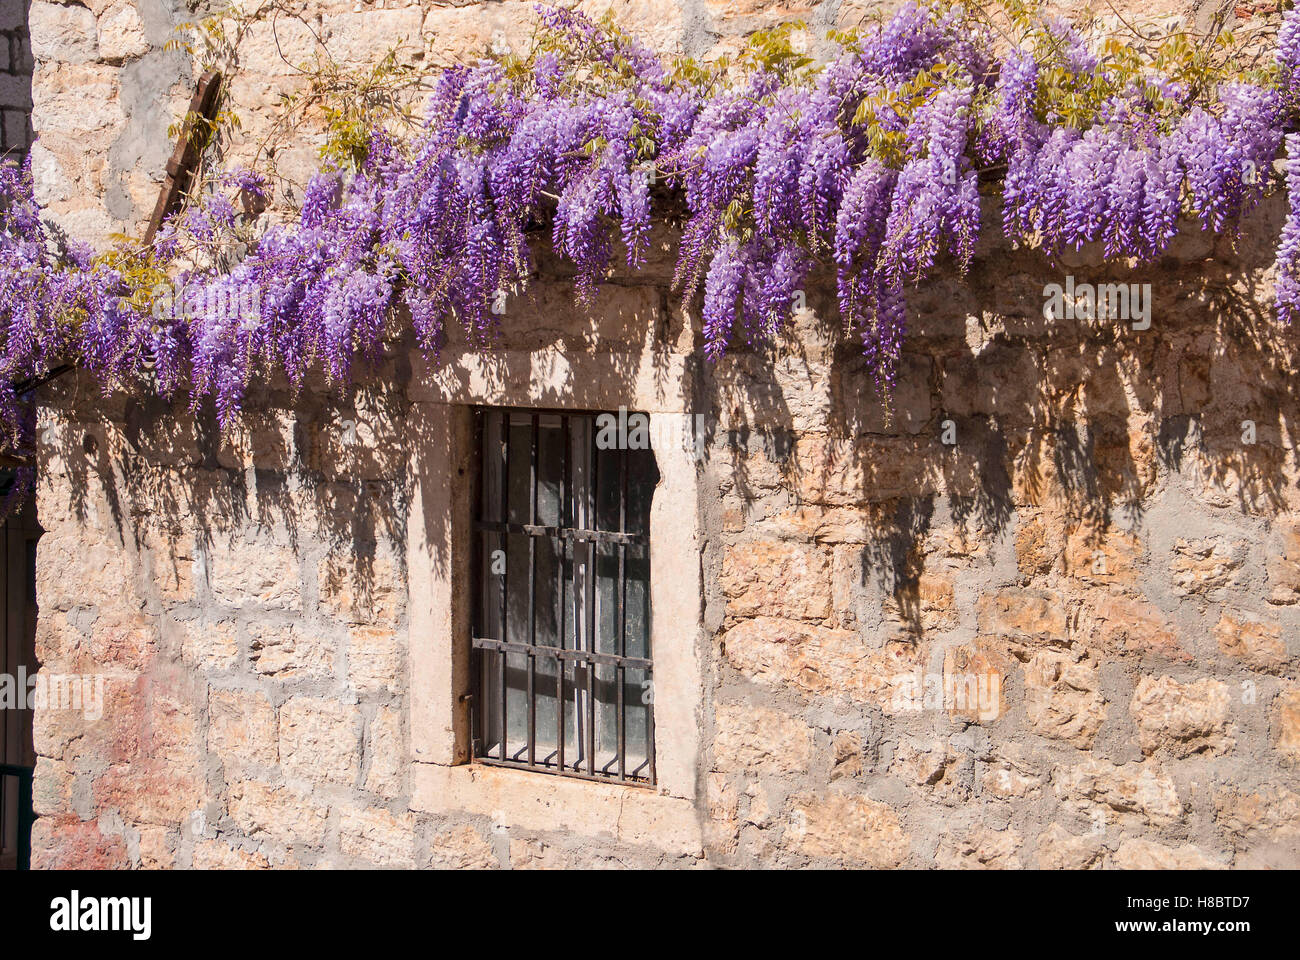 Wisteria on Mediterranean stone wall of old stone house in Montenegro. Stock Photo